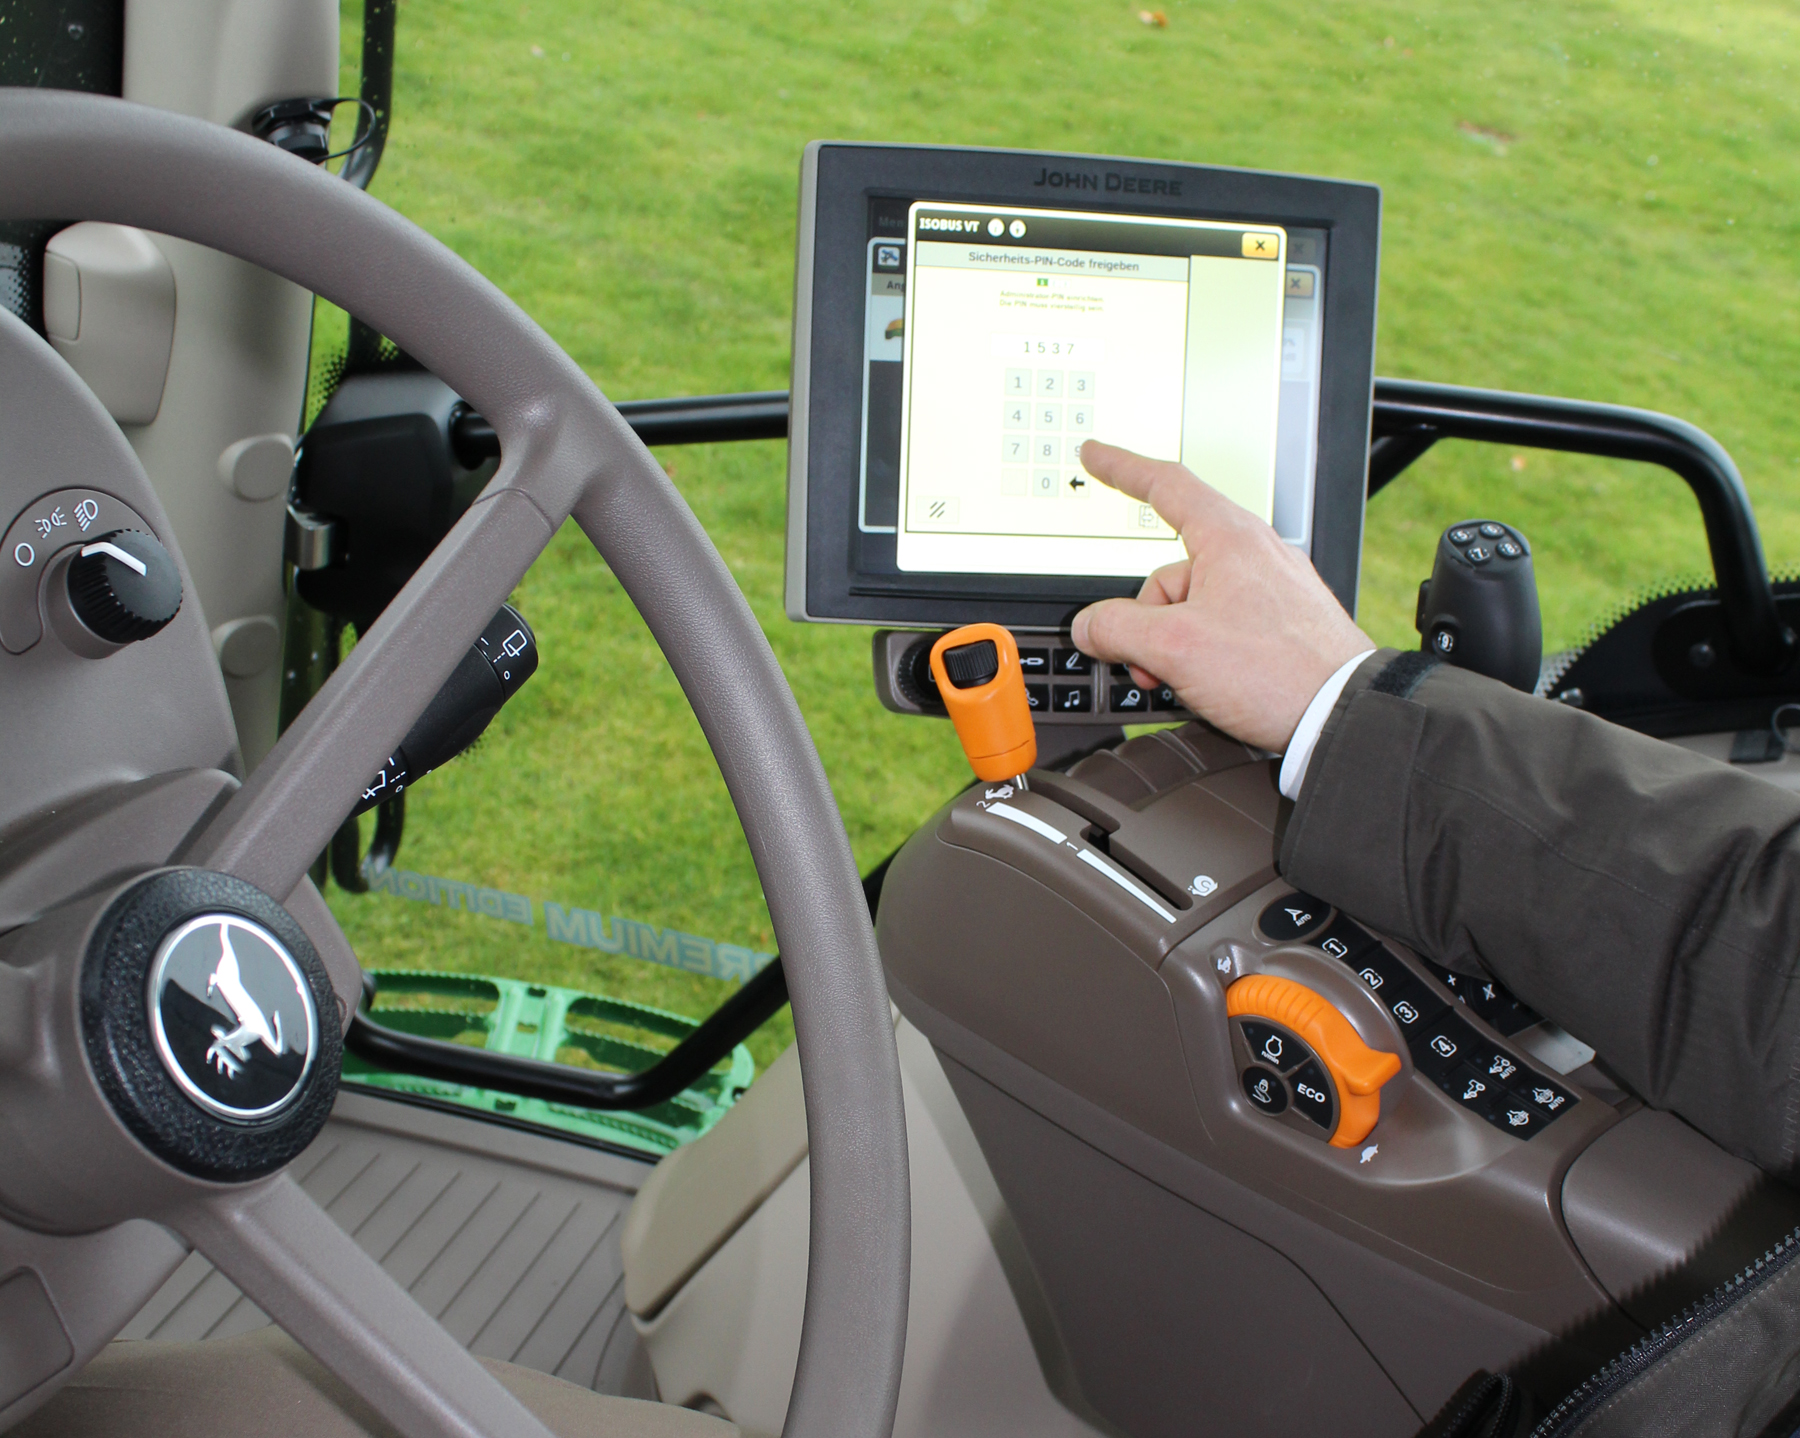 New John Deere security feature locks thieves out